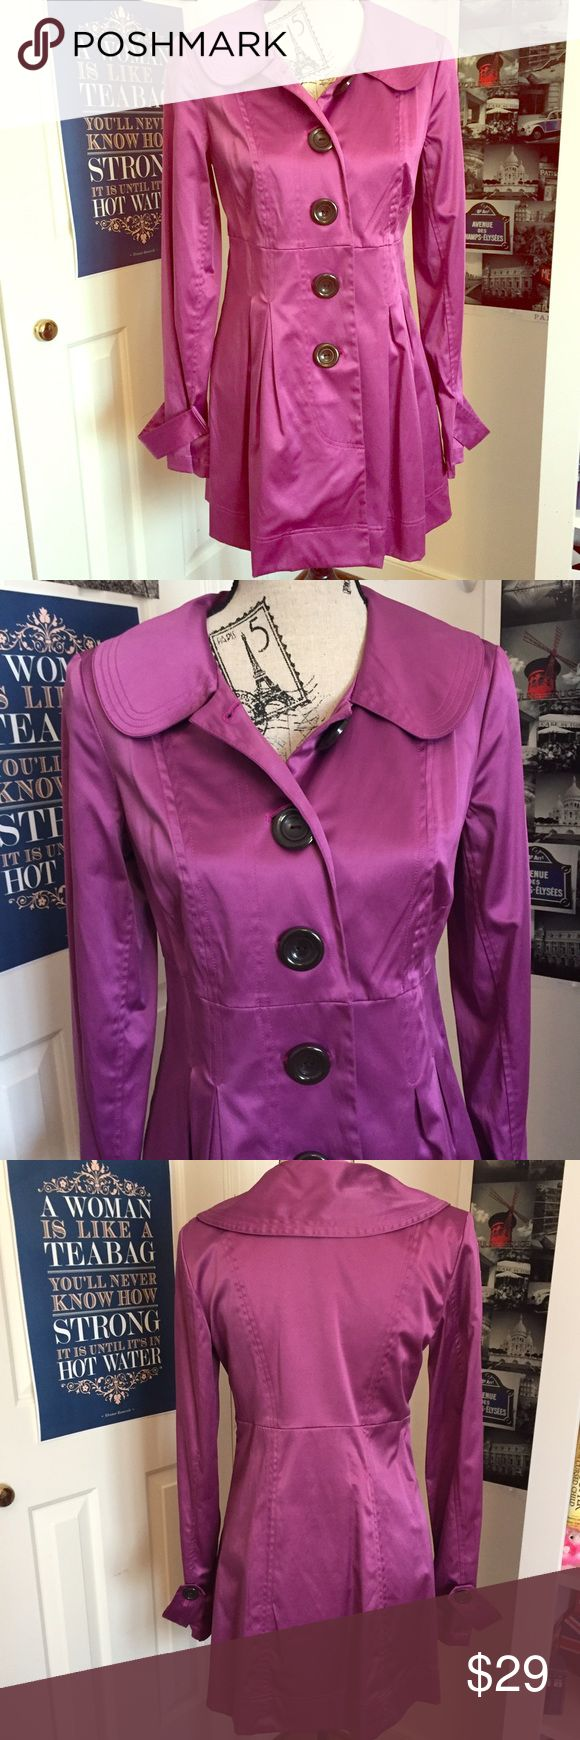 Purple Trench Coat (Junior's M) Gorgeous purple button-up trench coat with a satin-like finish. From Dillard's junior department. New without tags. 50% Polyester, 47% Cotton, 3% Spandex. Extra buttons sewn inside by left pocket. (Kept in smoke-free, pet-free environment.) I.N. San Francisco Jackets & Coats Trench Coats